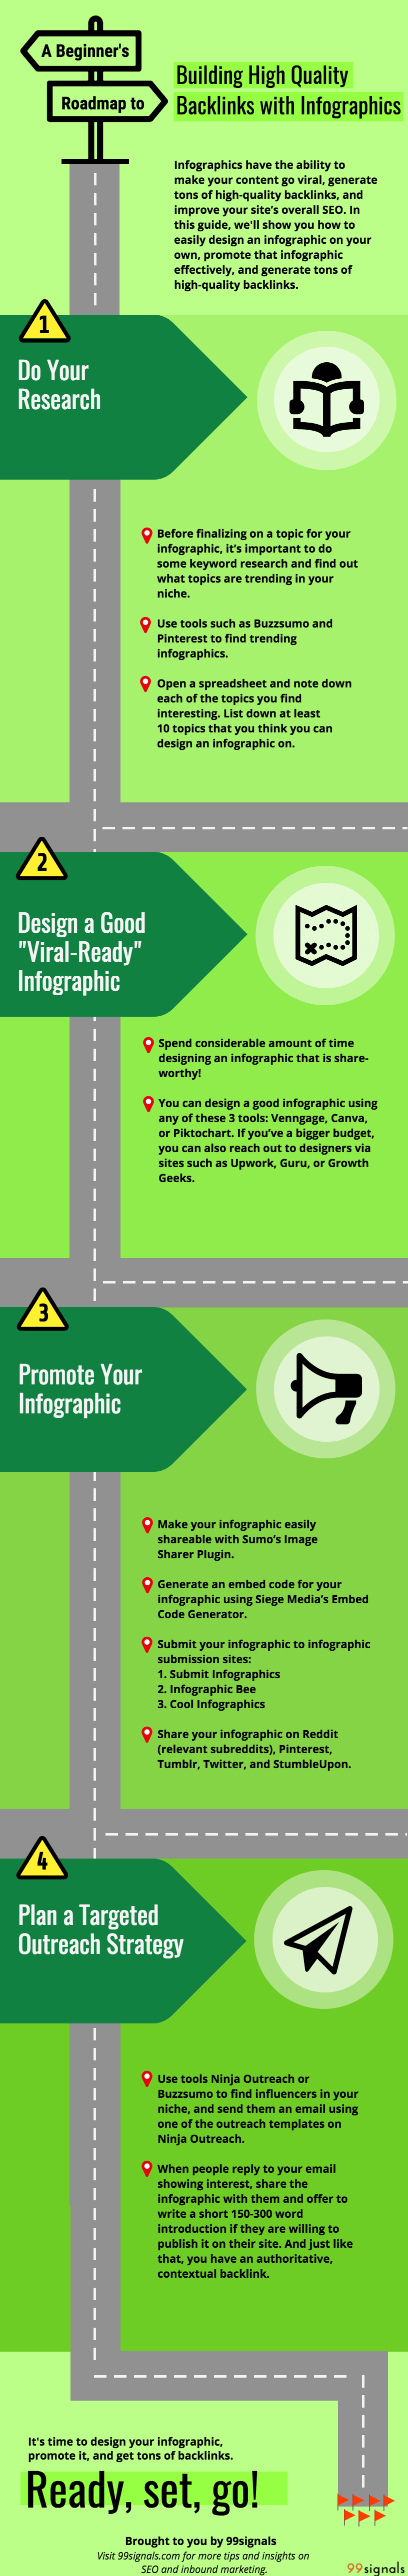 Building-High-Quality-Backlinks-with-Infographics-by-99signals-infographic-plaza